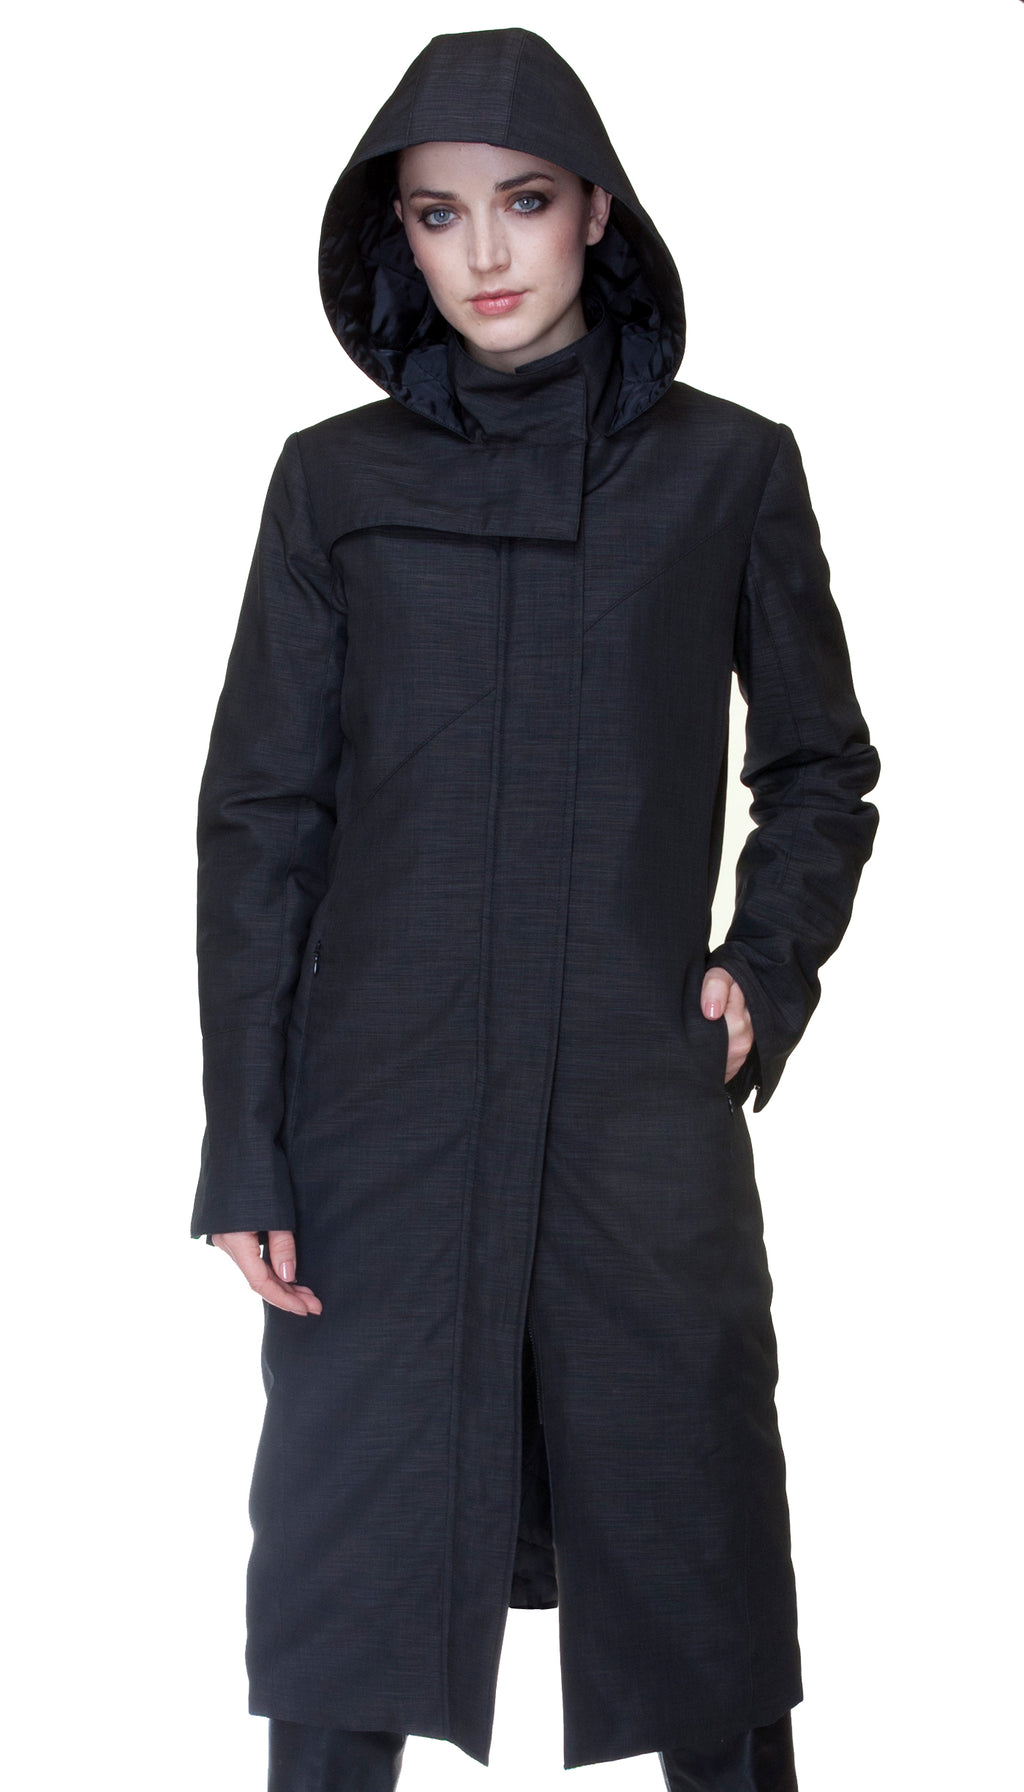 Hooded Mock Neck Zip Maxi Storm Coat w/ Thinsulate Quilted Liner *Nylon